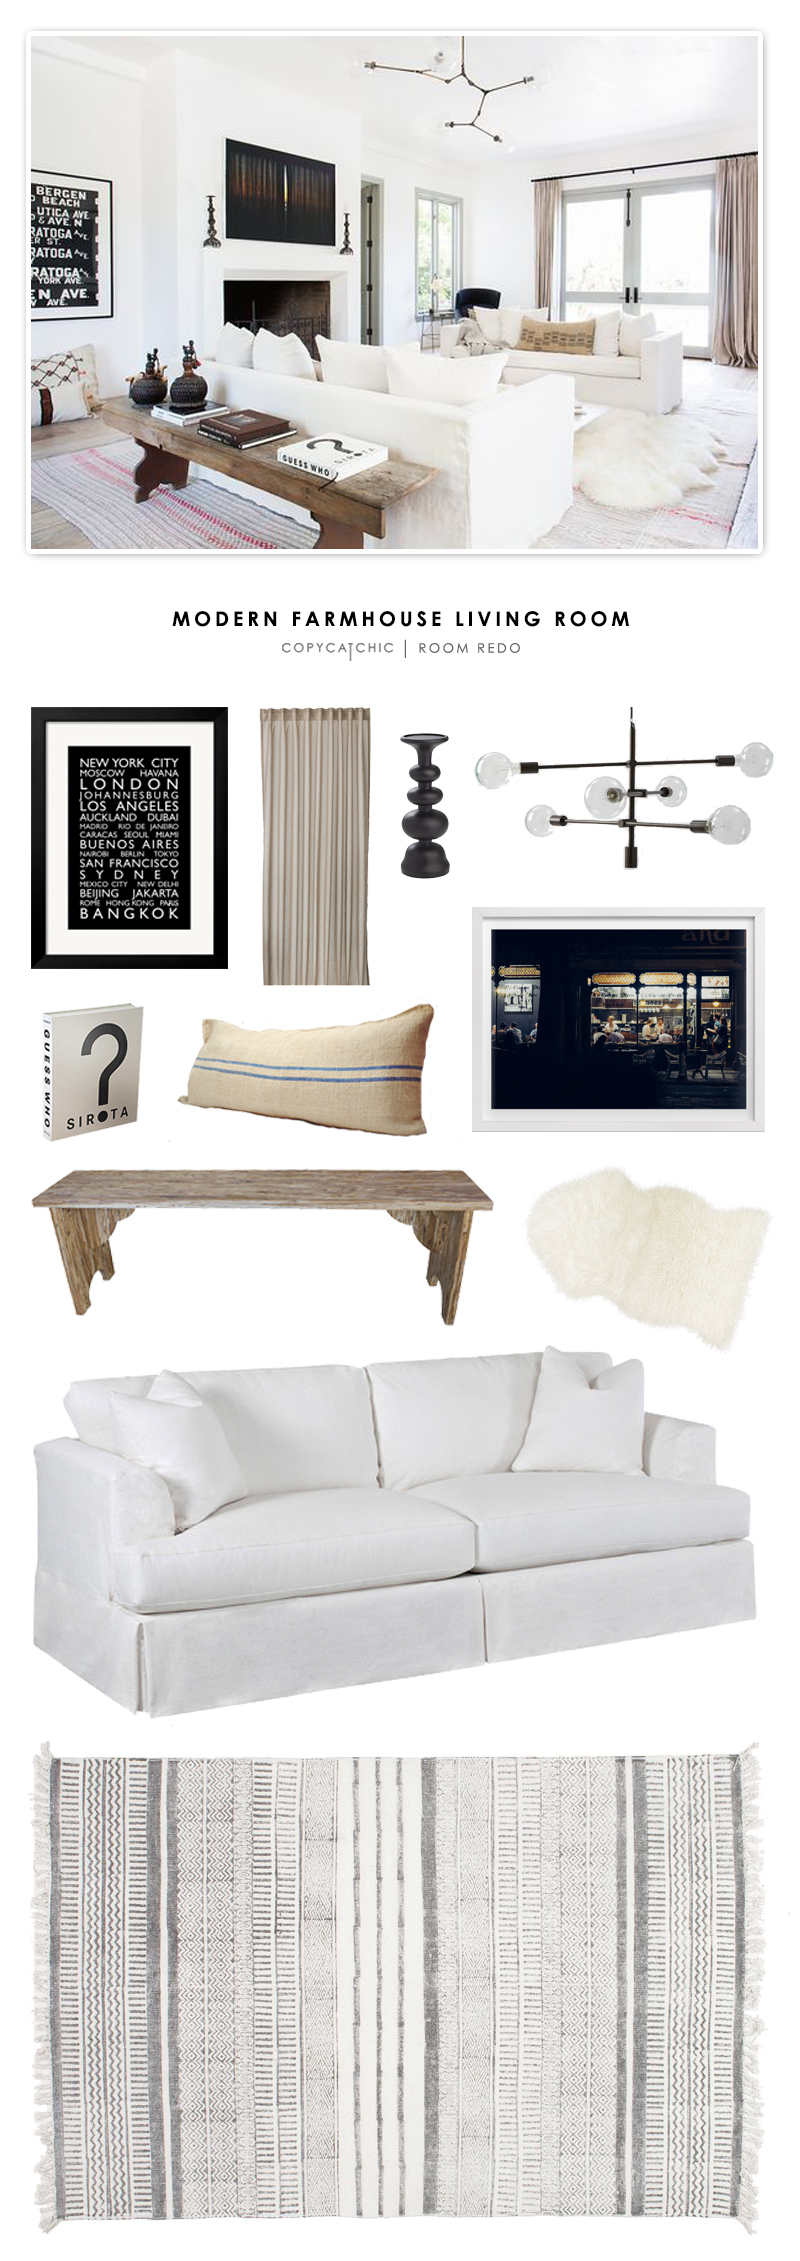 Copy Cat Chic Room Redo Modern Farmhouse Living Room